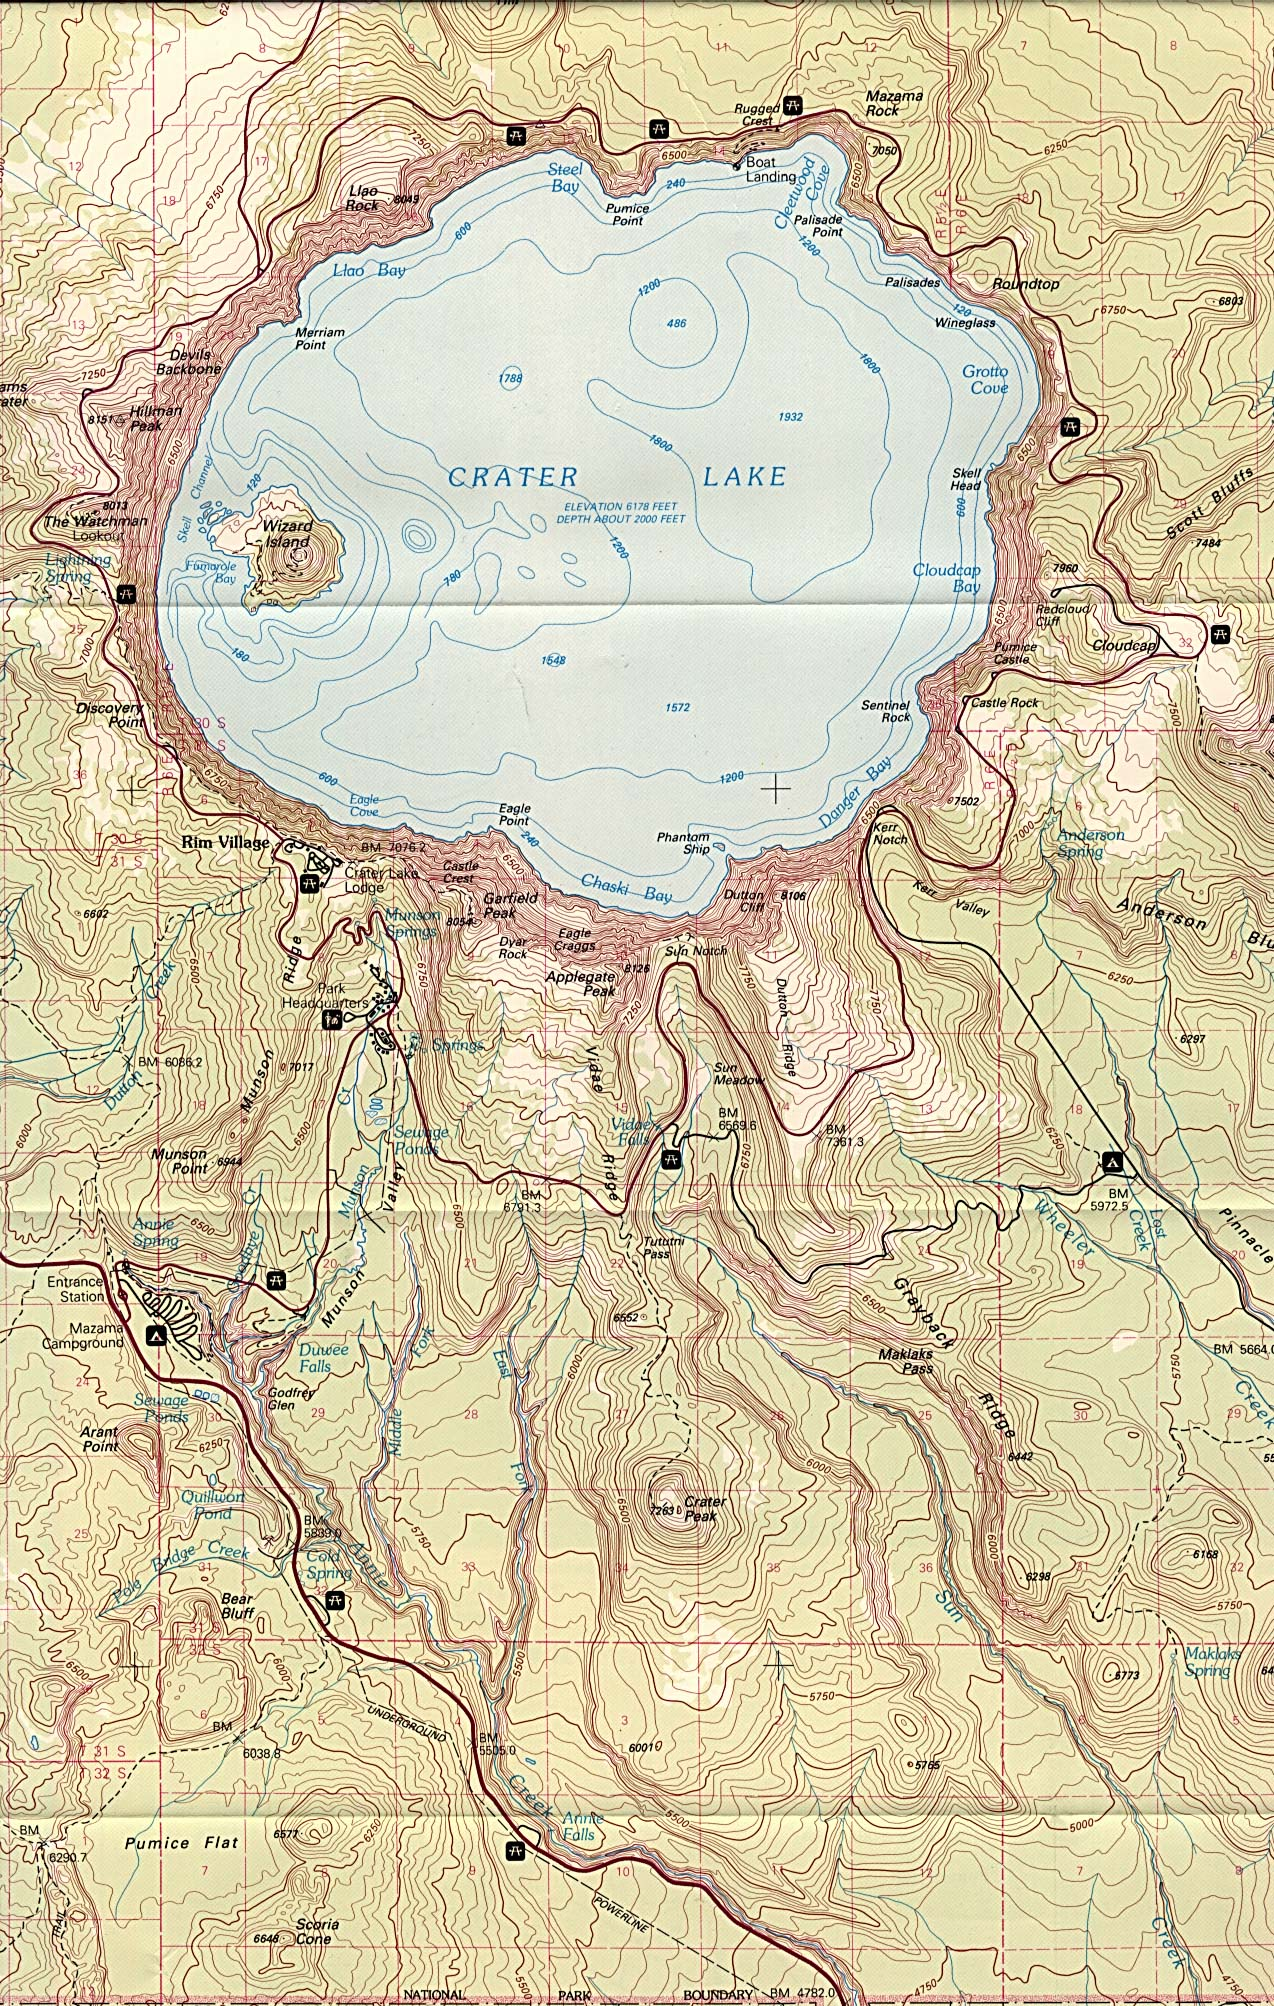 Maps of United States National Parks and Monuments Denali National Park Topographic Map on